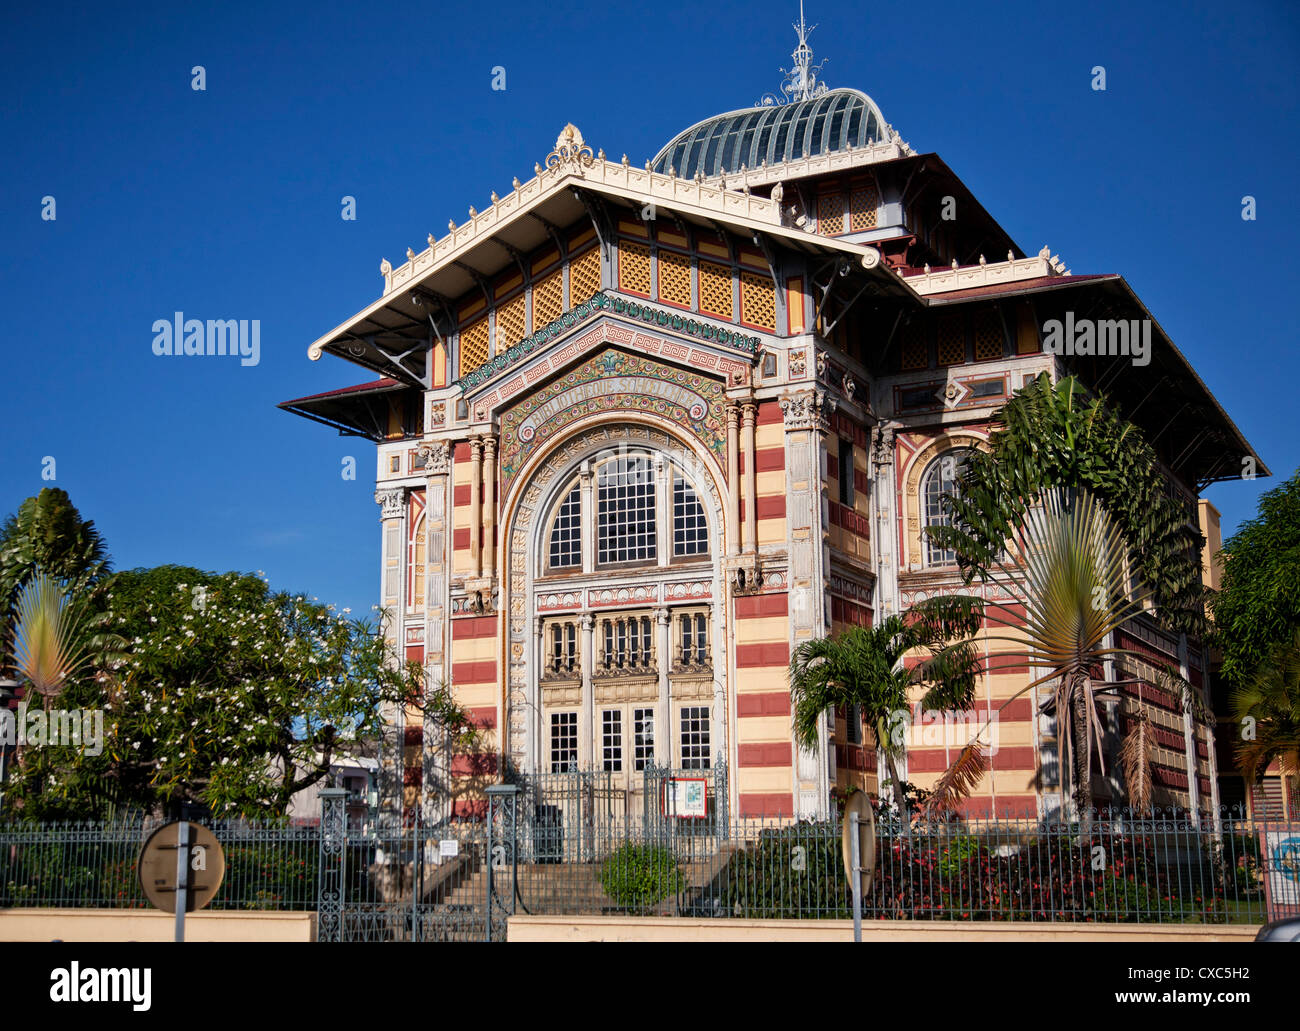 Bibliotheque Schoelcher (library), Fort-de-France, Martinique, Lesser Antilles,West Indies, Caribbean, Central America Stock Photo